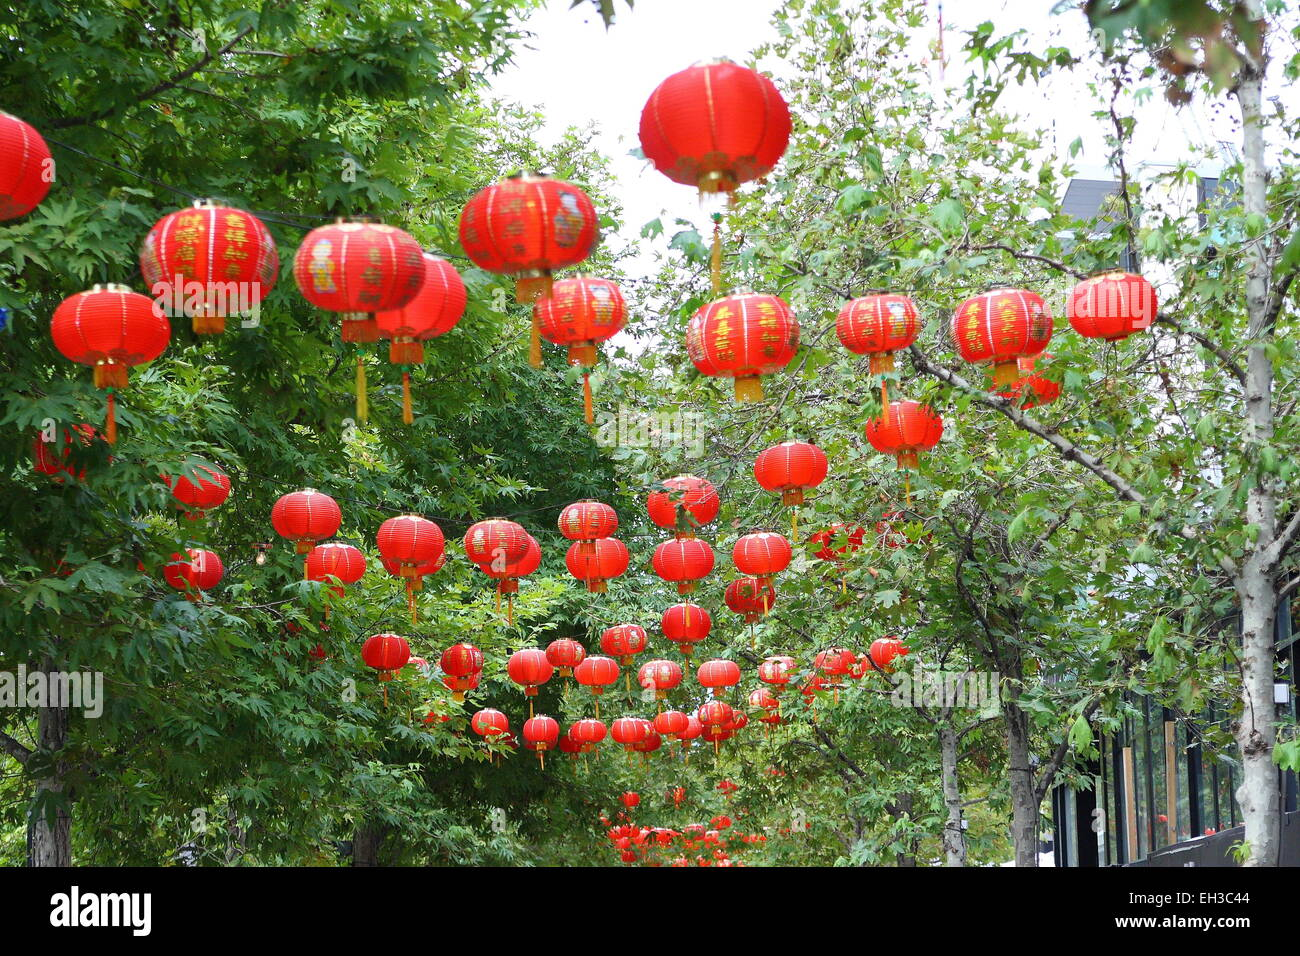 Paper Lanterns Melbourne Red Lanterns Hanging On Trees During Lunar Festival In Southbank